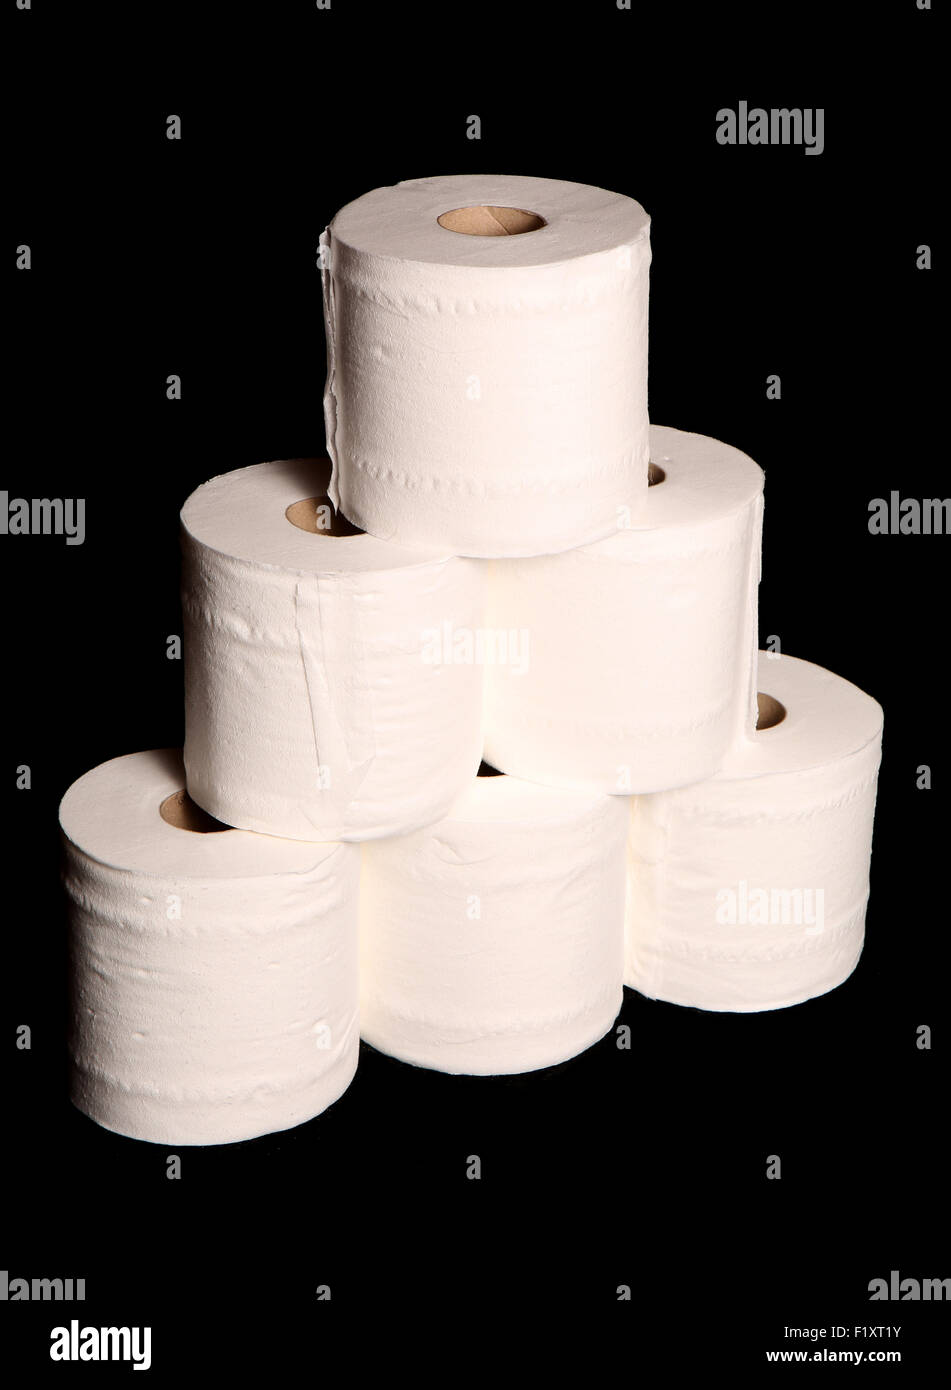 stack of toilet paper rolls on black background stock